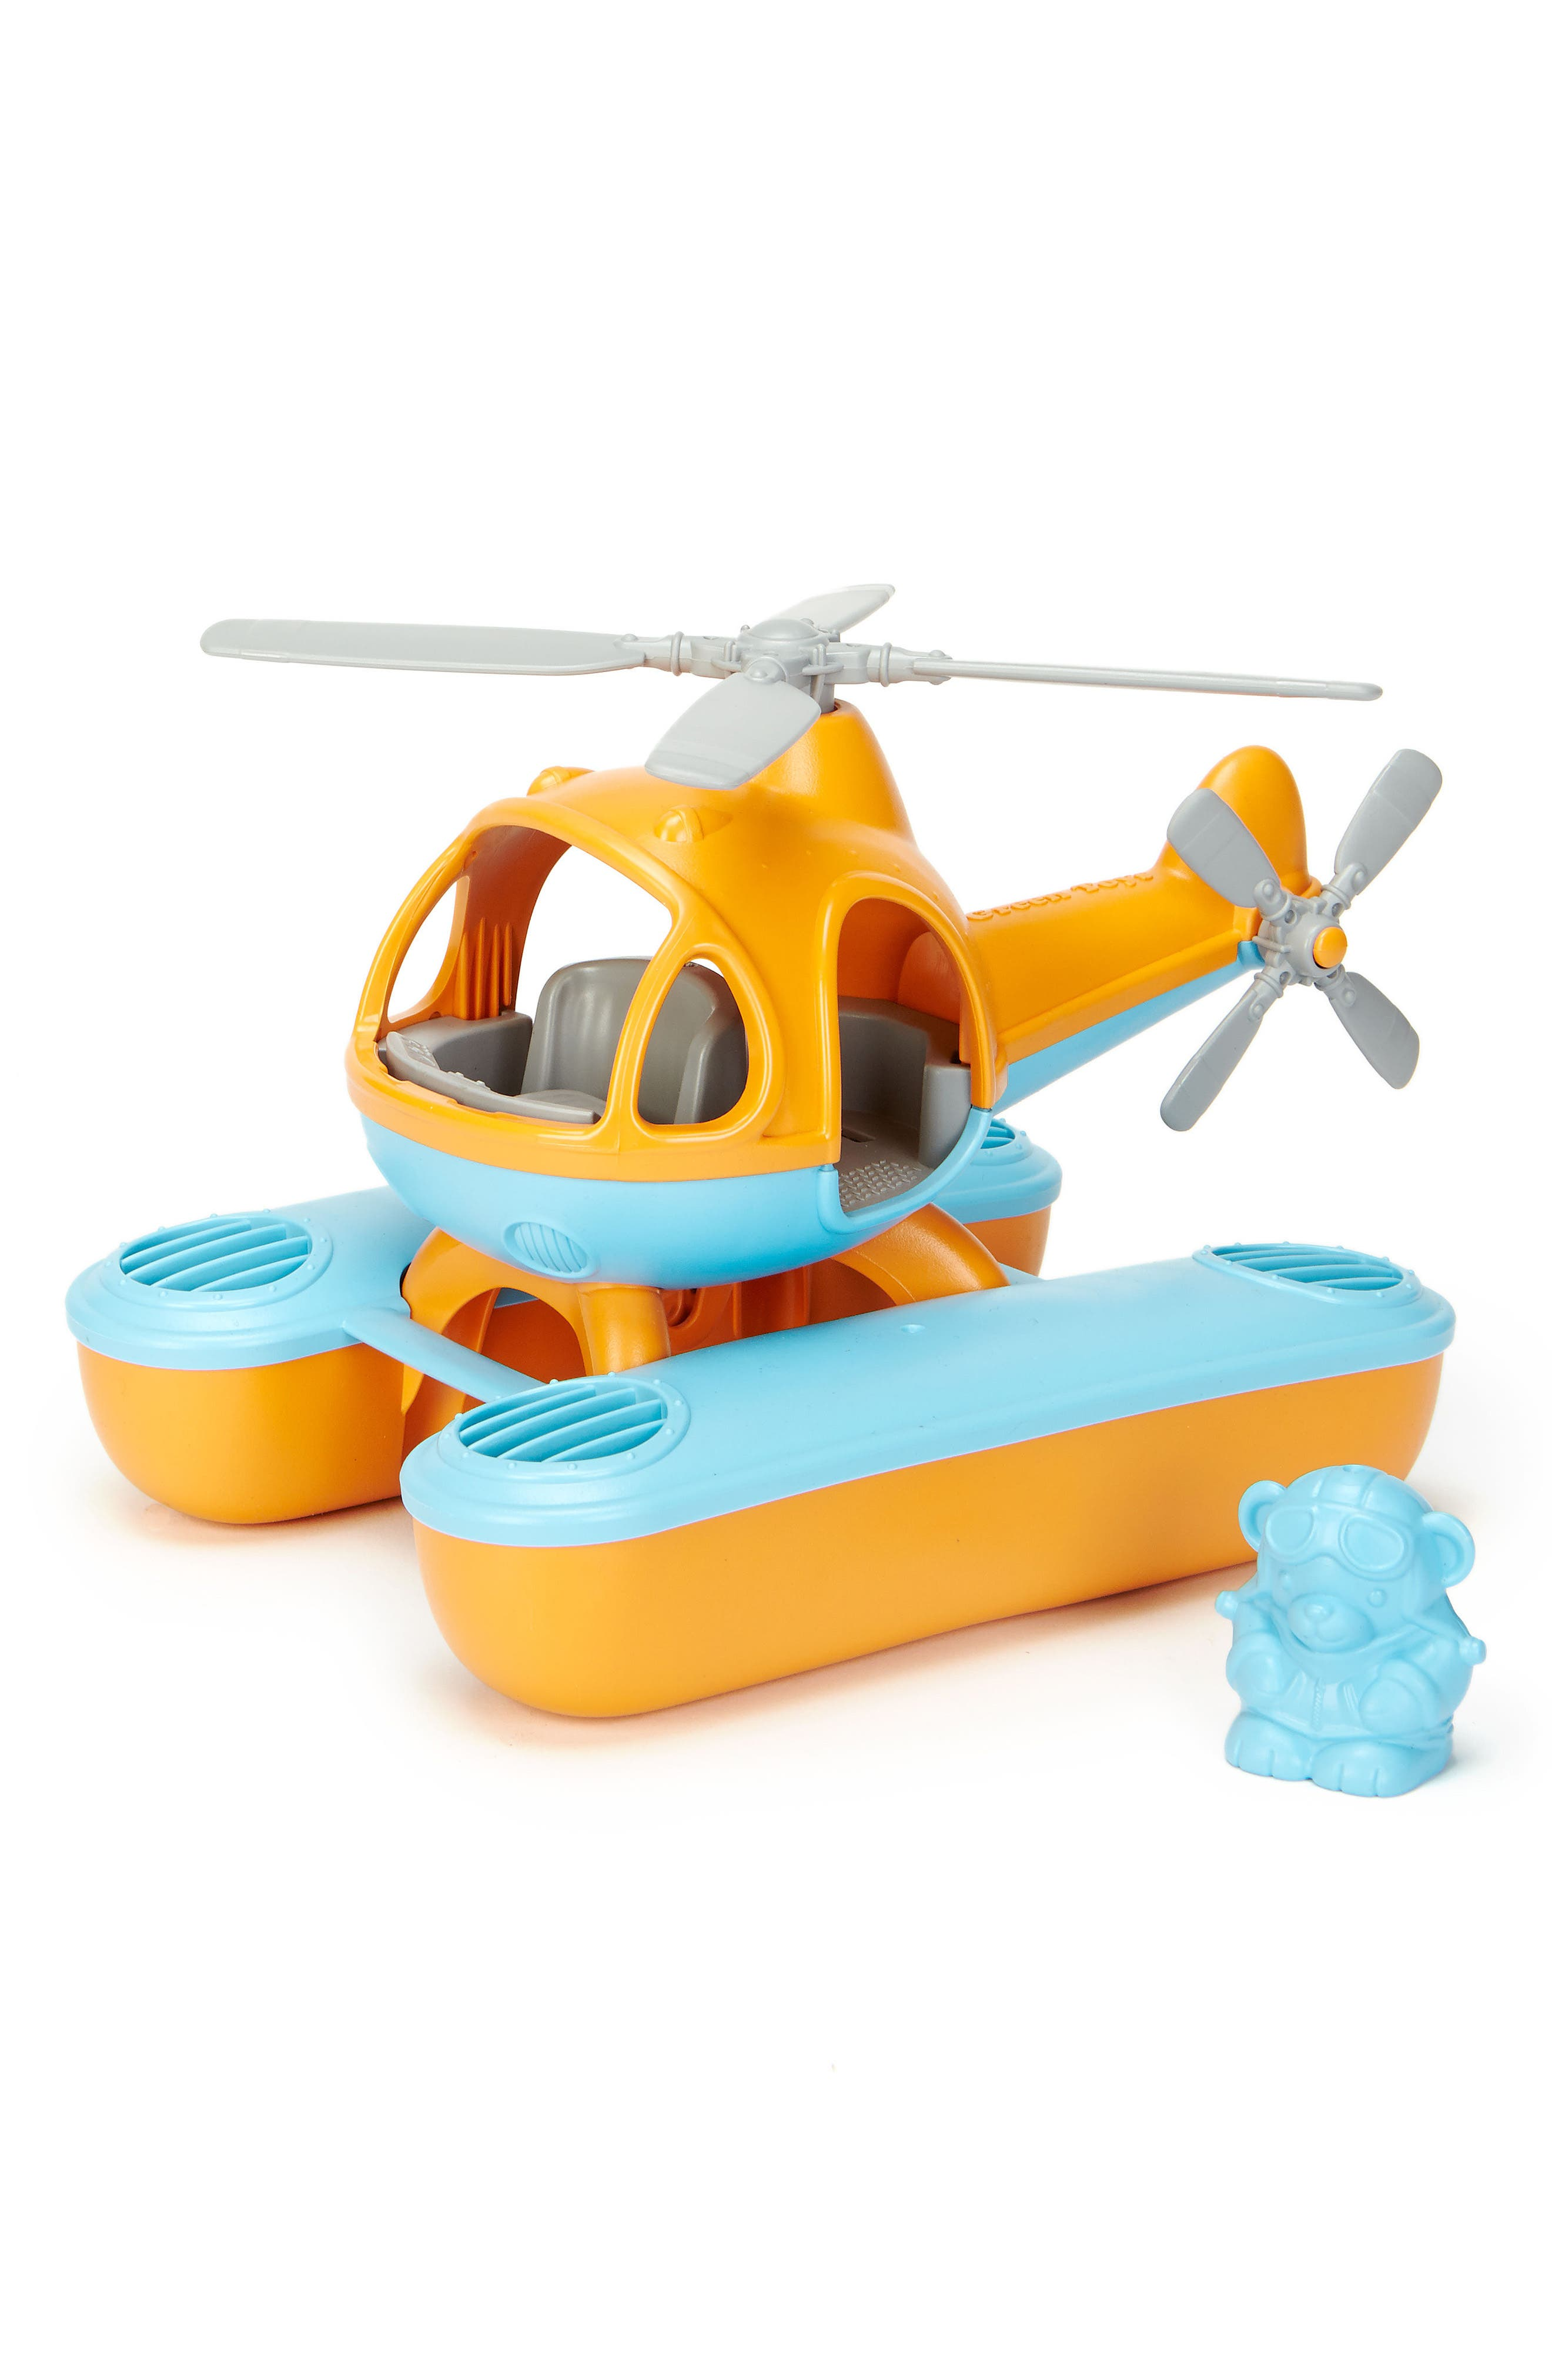 Two-Piece Seacopter Toy,                             Main thumbnail 1, color,                             Orange